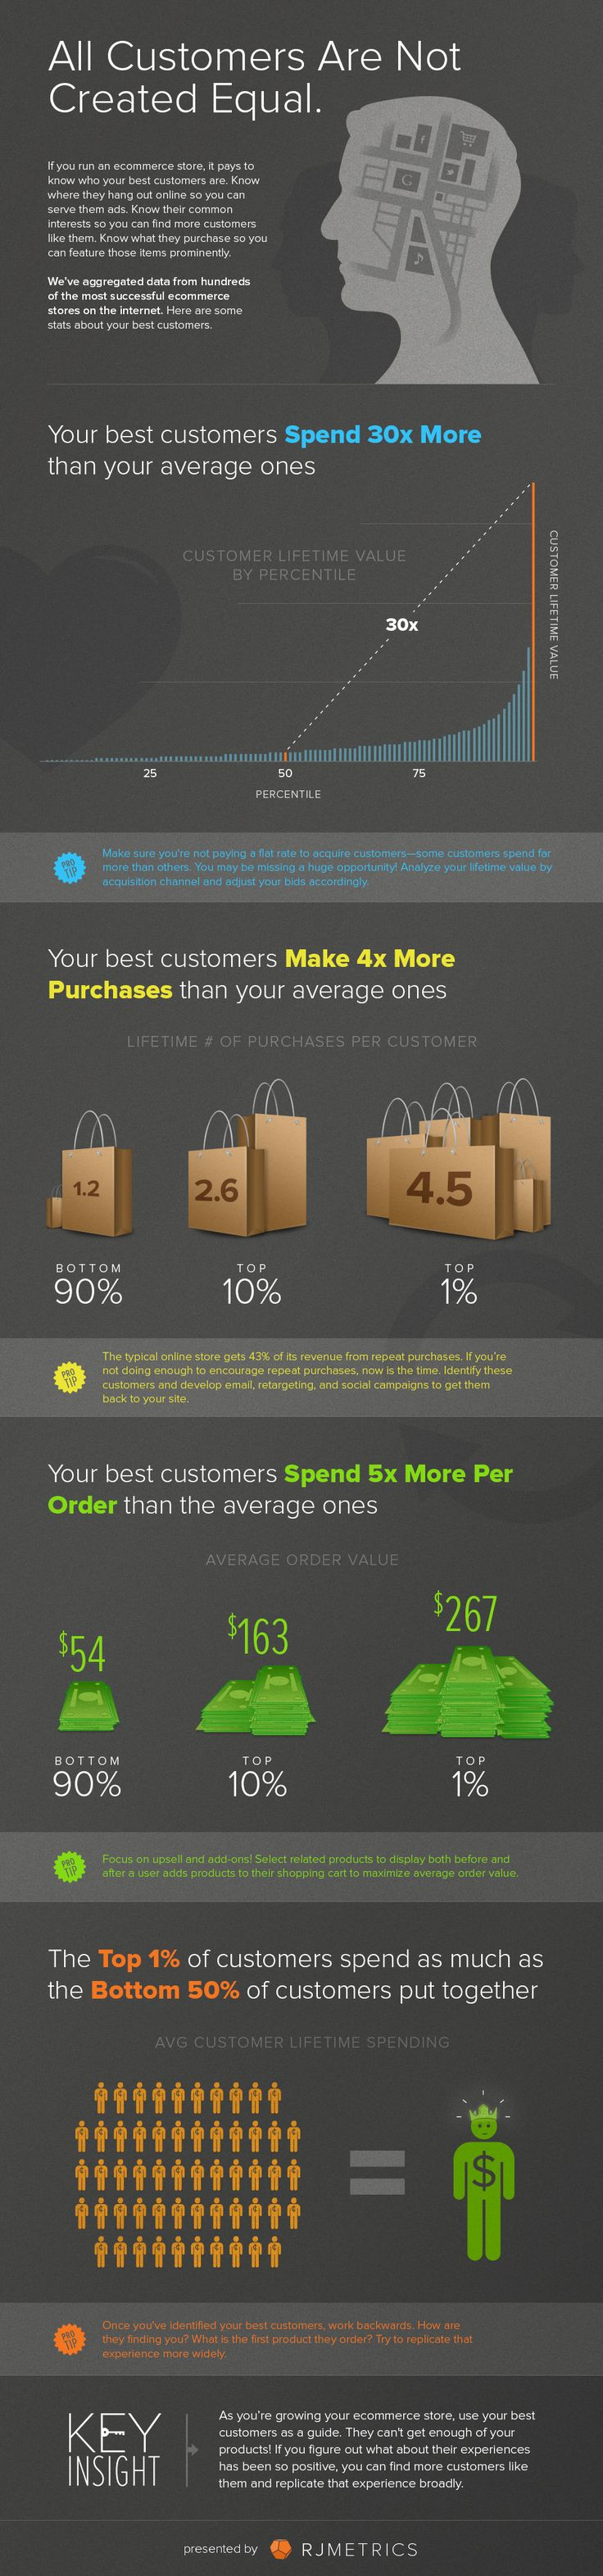 Infographic: Customer Lifetime Value #ecommerce #customers